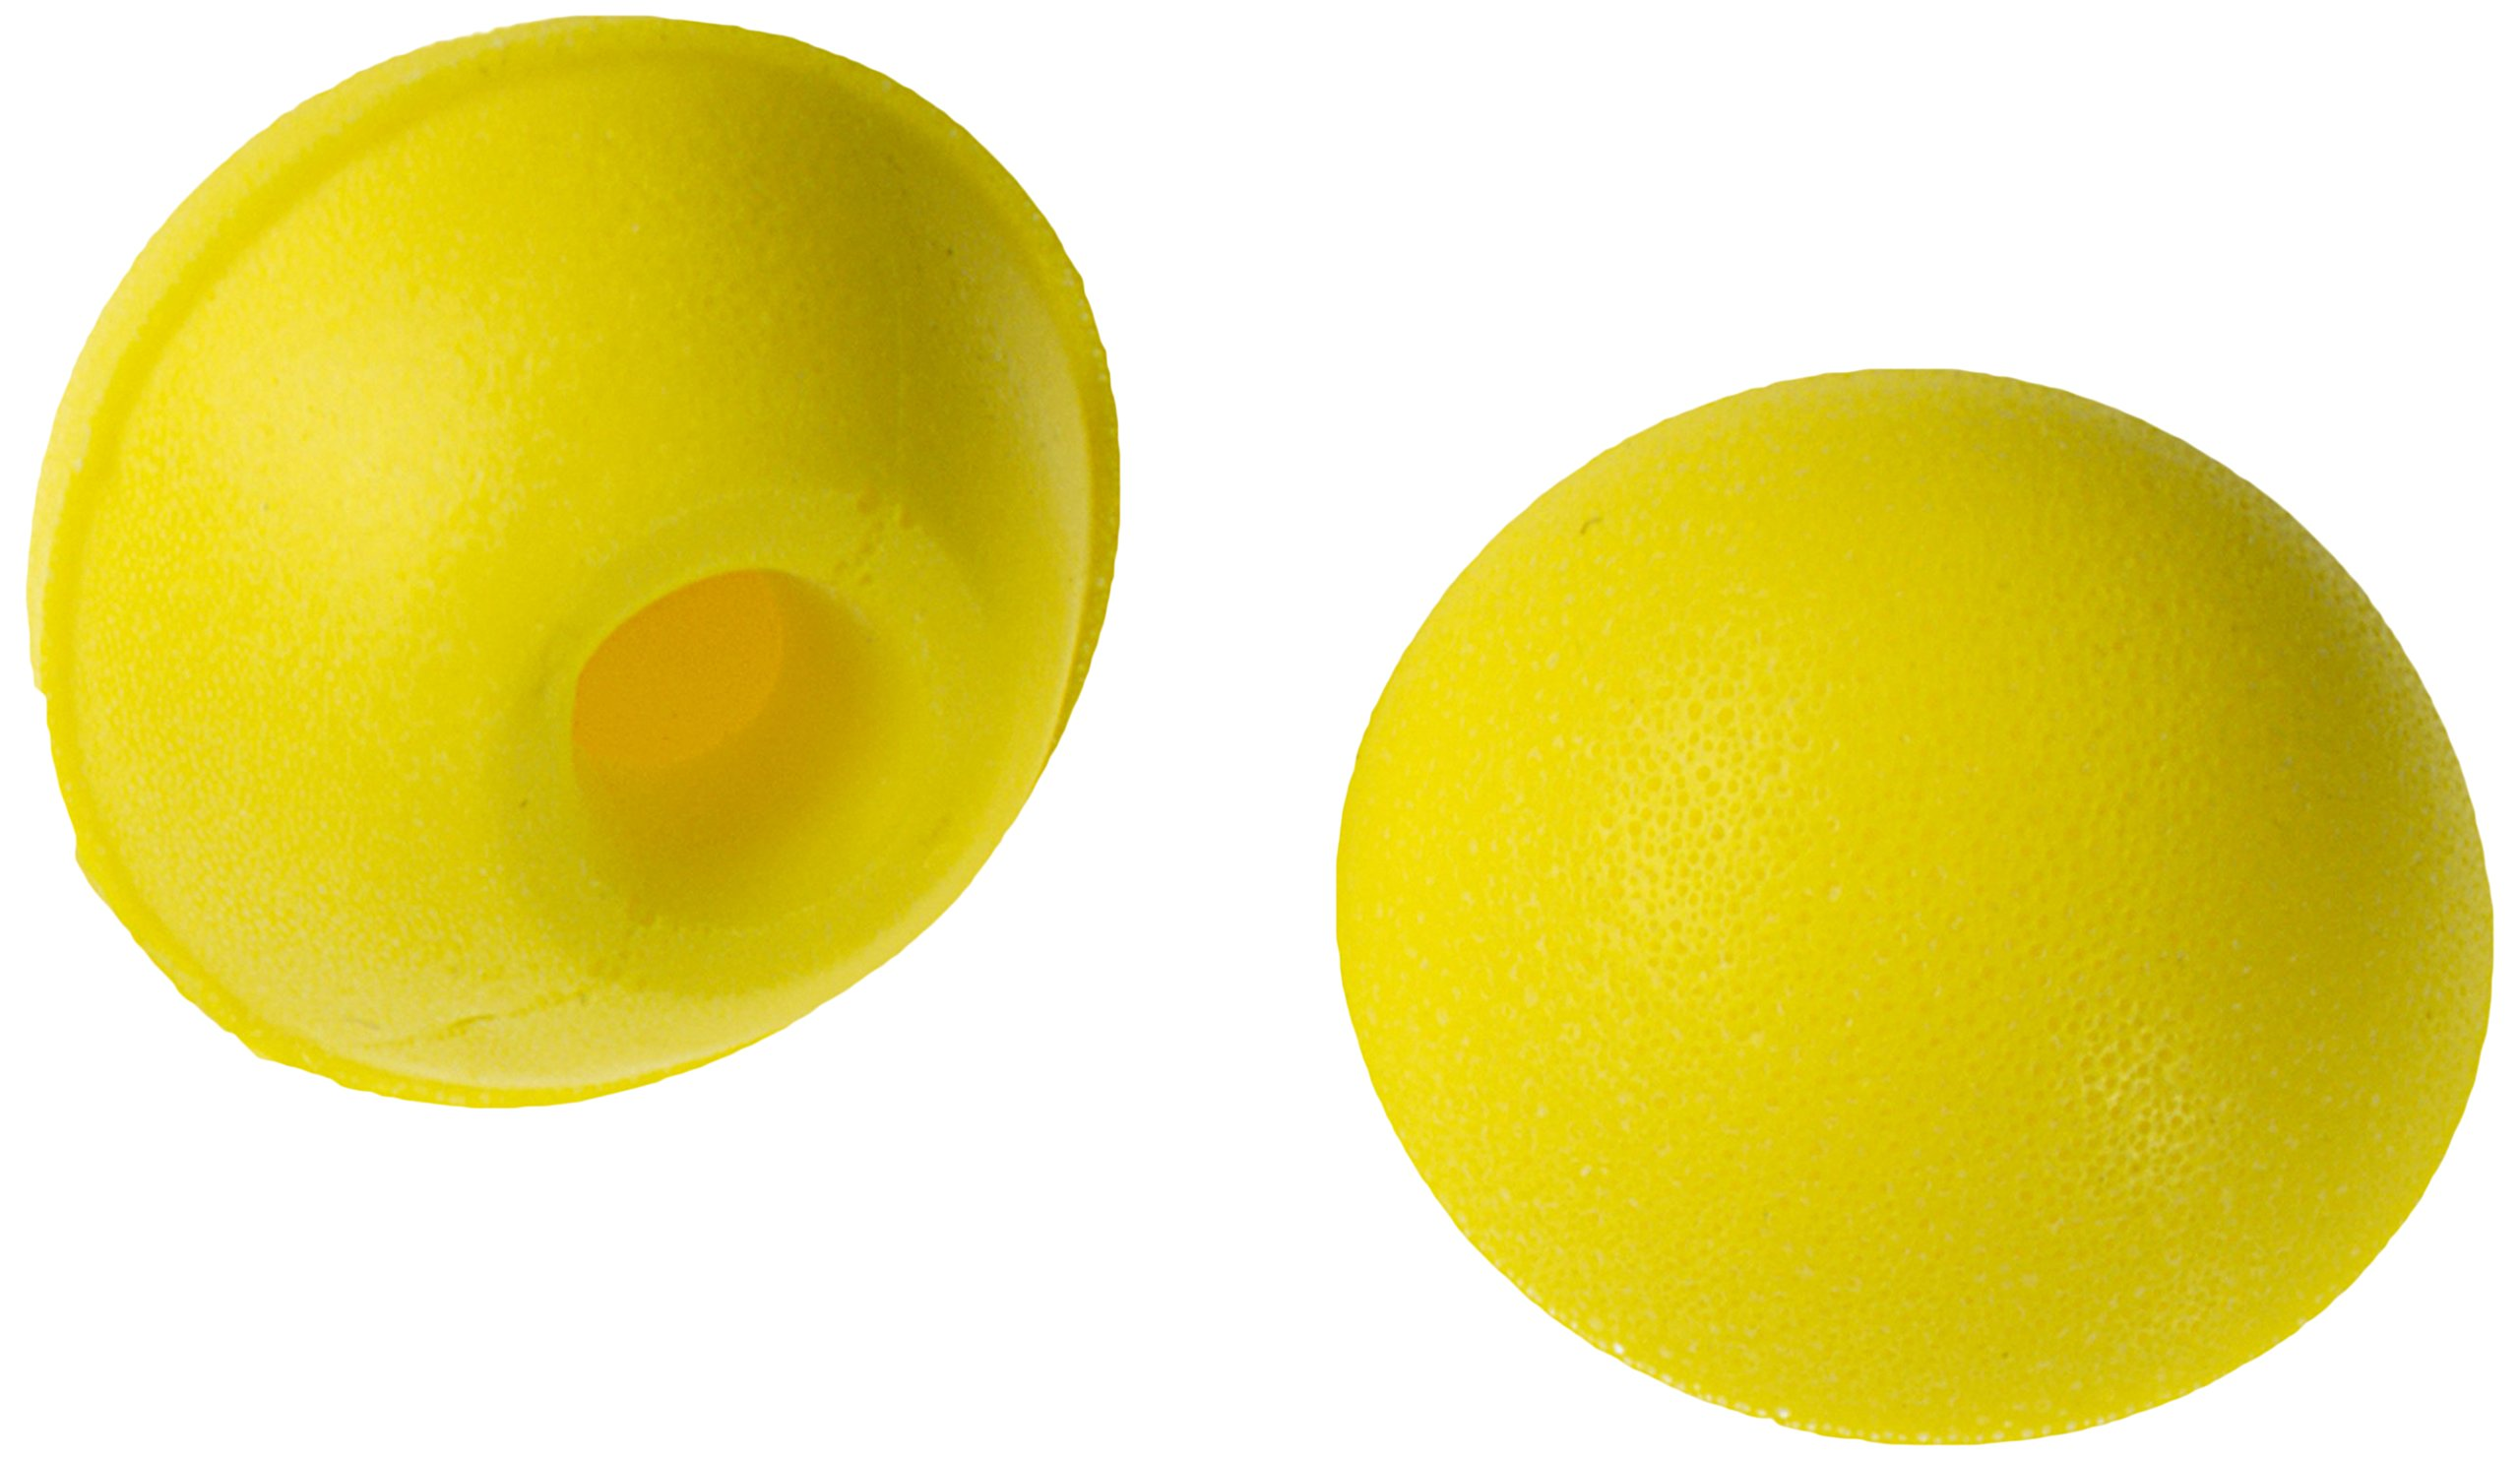 3M E-A-R Caps 19066 Model 200 Hearing Protector Replacement Pods 321-2103, Polyurethane, Yellow by 3M E-A-R Caps